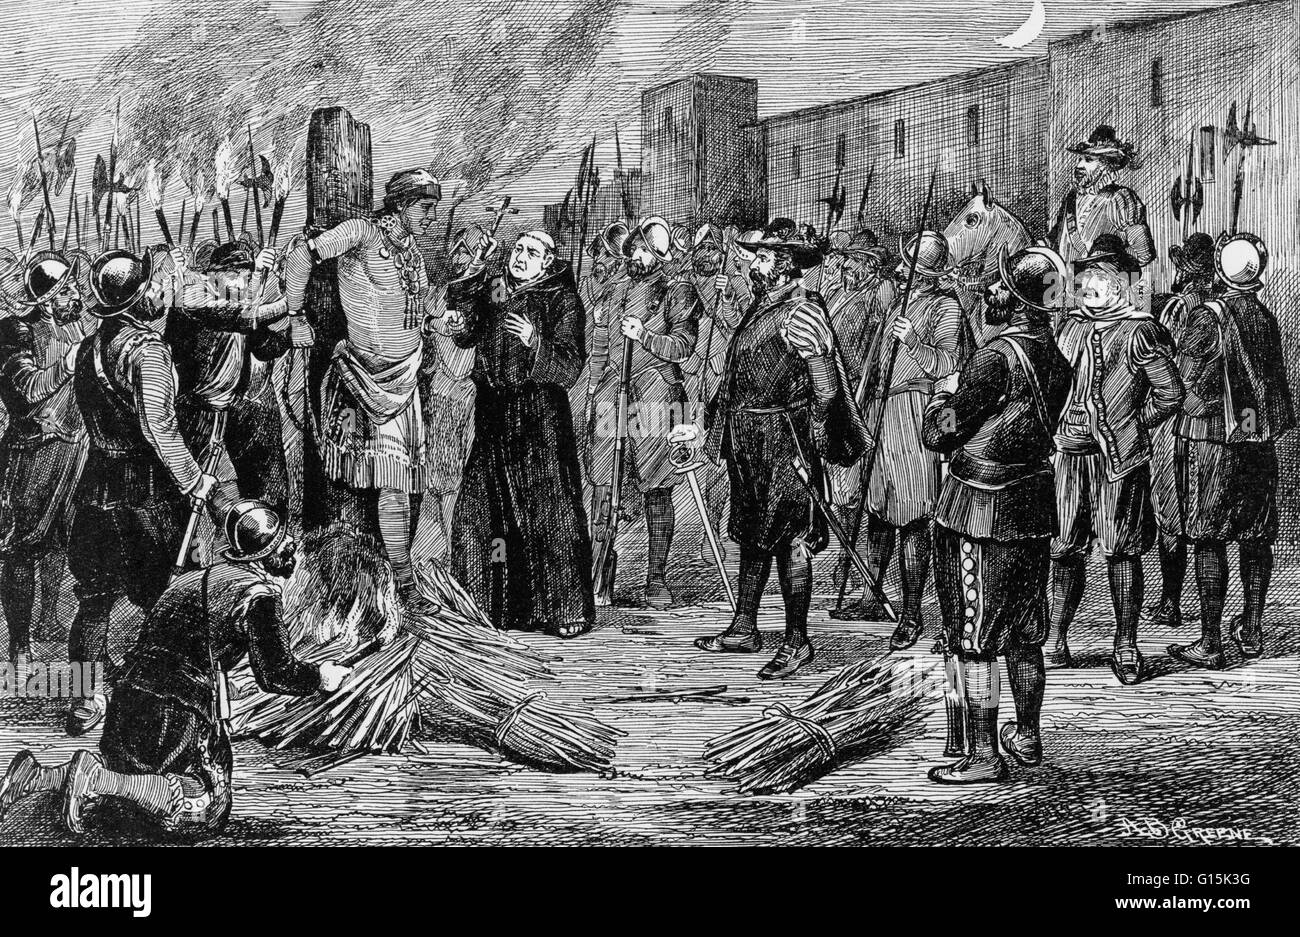 Engraving depicting the execution of Atahualpa, the last sovereign emperor of the the Inca Empire, by Spanish conquistadors. - Stock Image